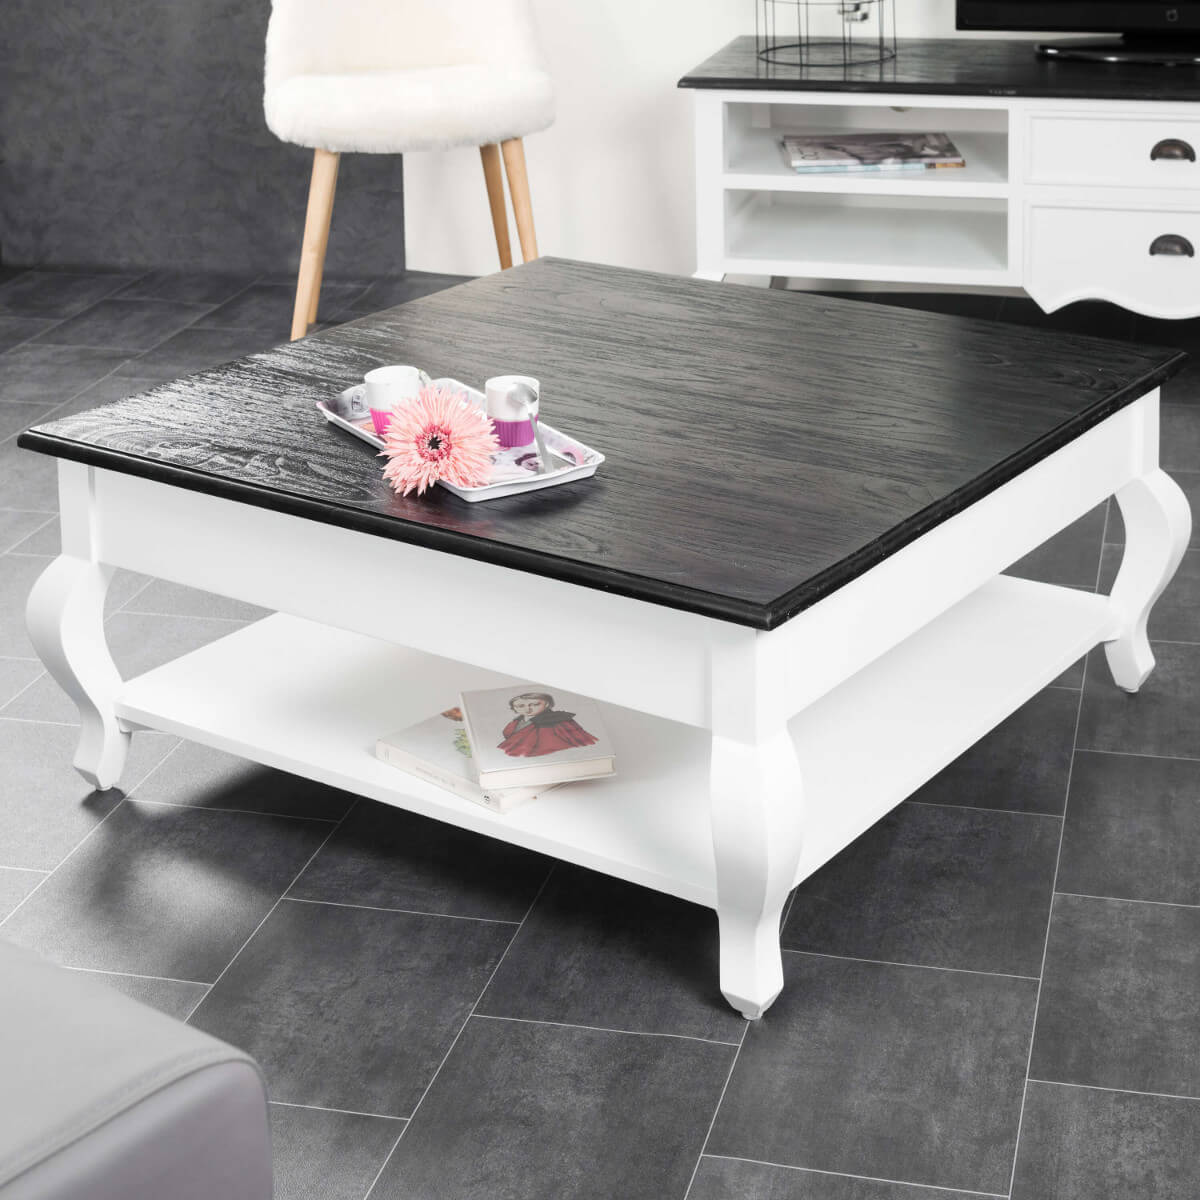 table basse acajou bois massif carr e blanche noire idao 95 cm. Black Bedroom Furniture Sets. Home Design Ideas